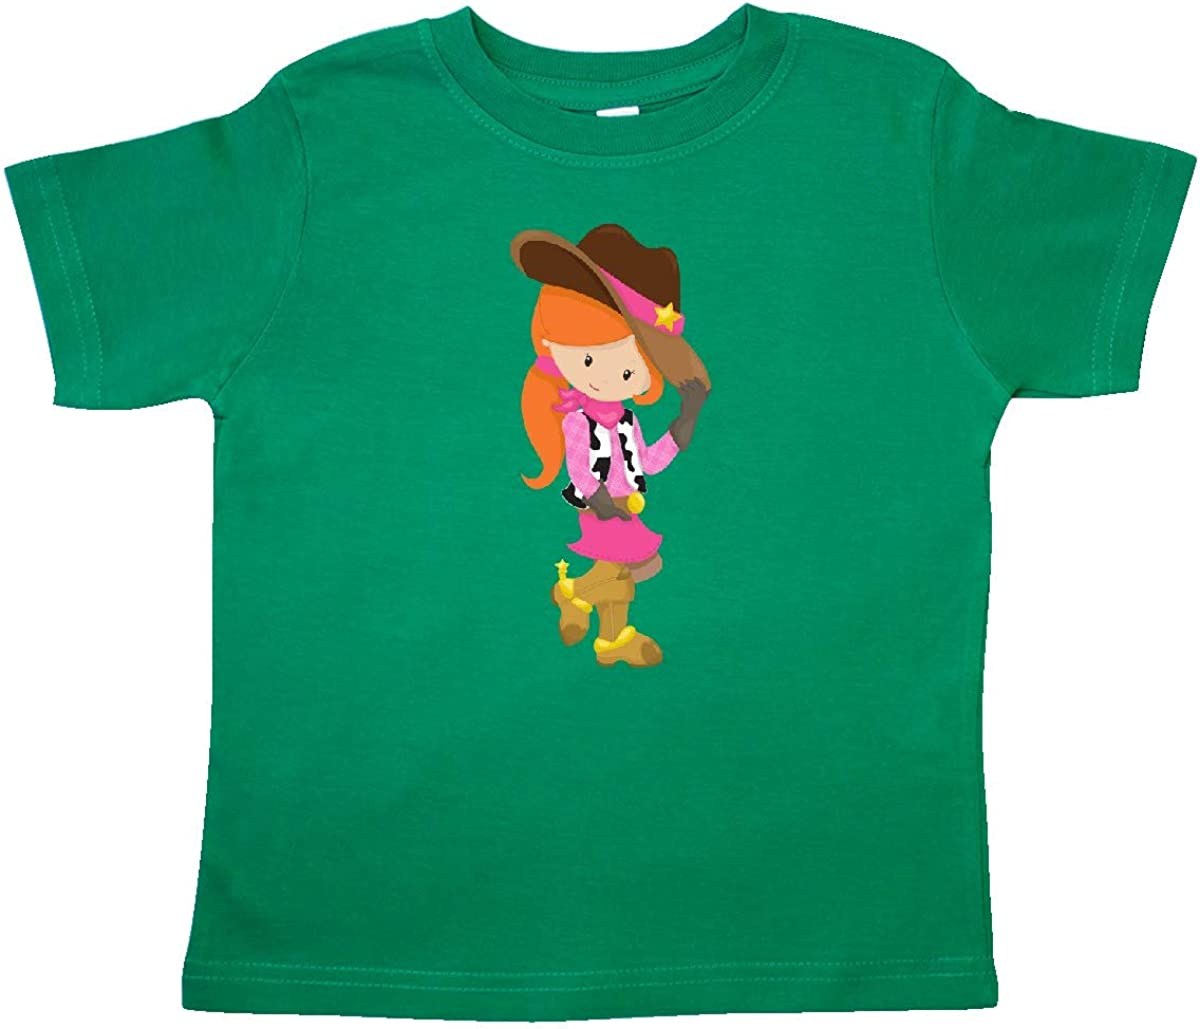 Girl with Cowboy Hat Orange Hair Toddler T-Shirt inktastic Cowboy Girl